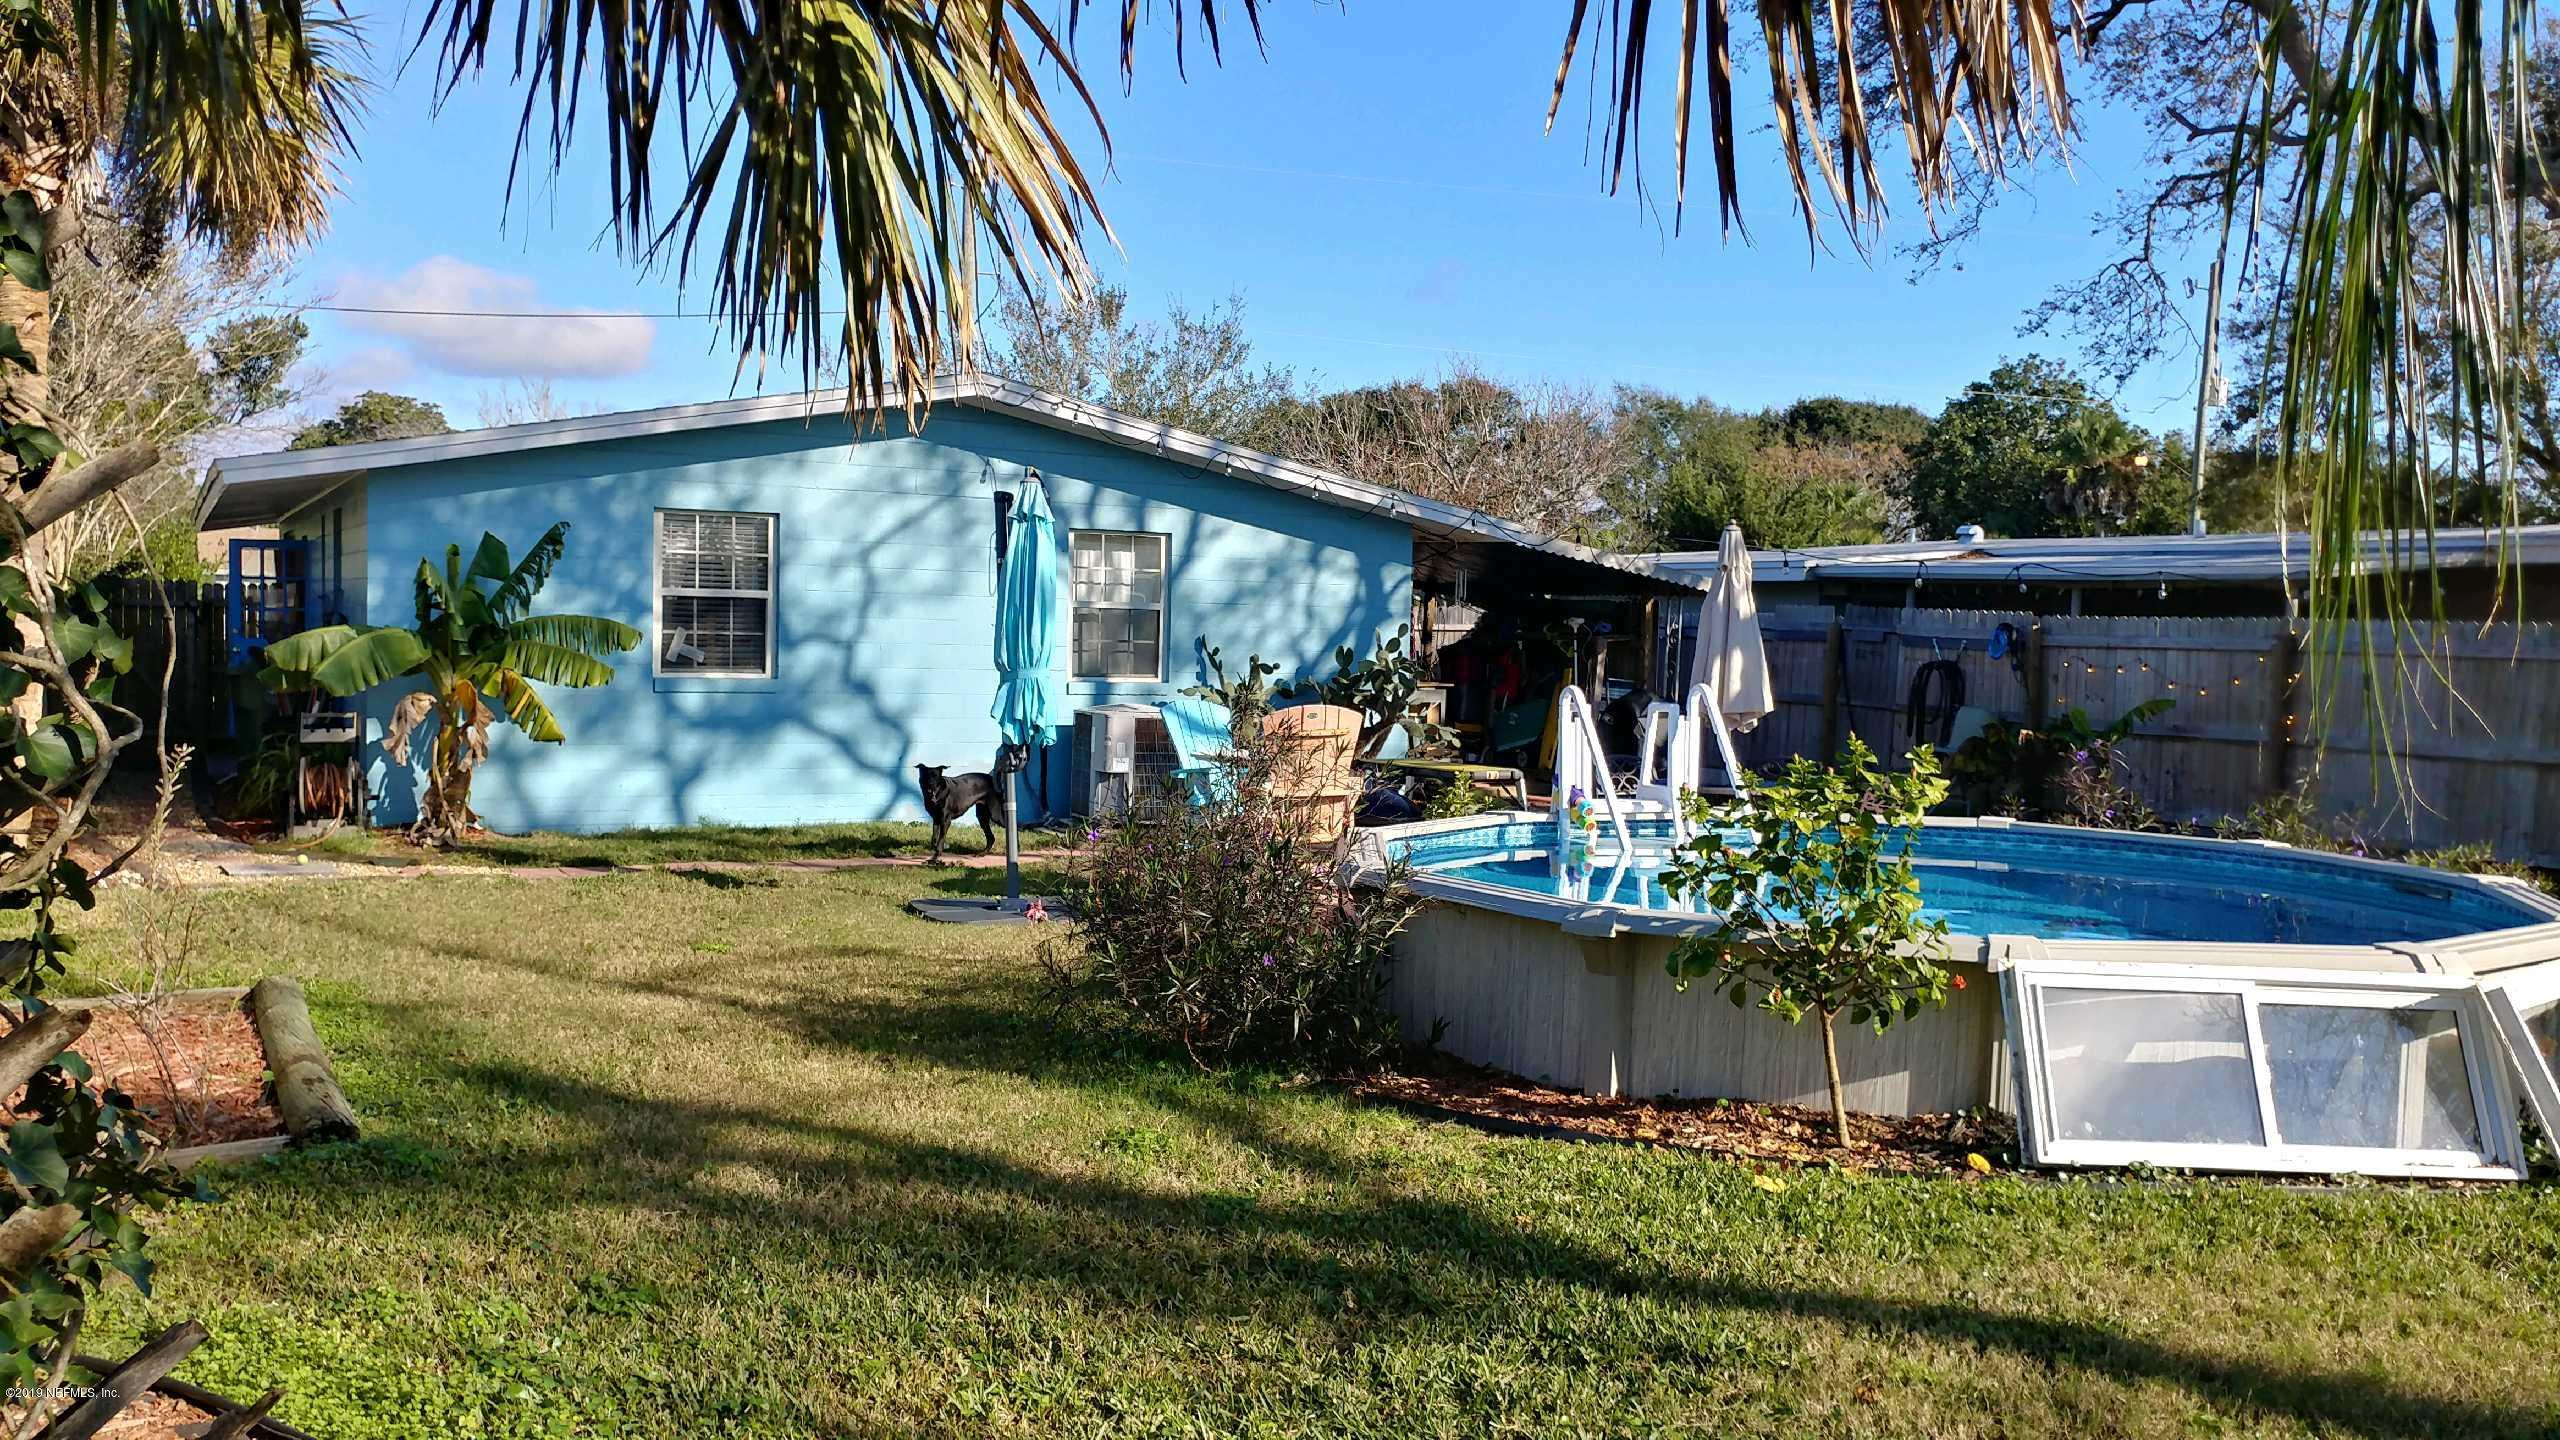 614 6TH AVE JACKSONVILLE BEACH - 5